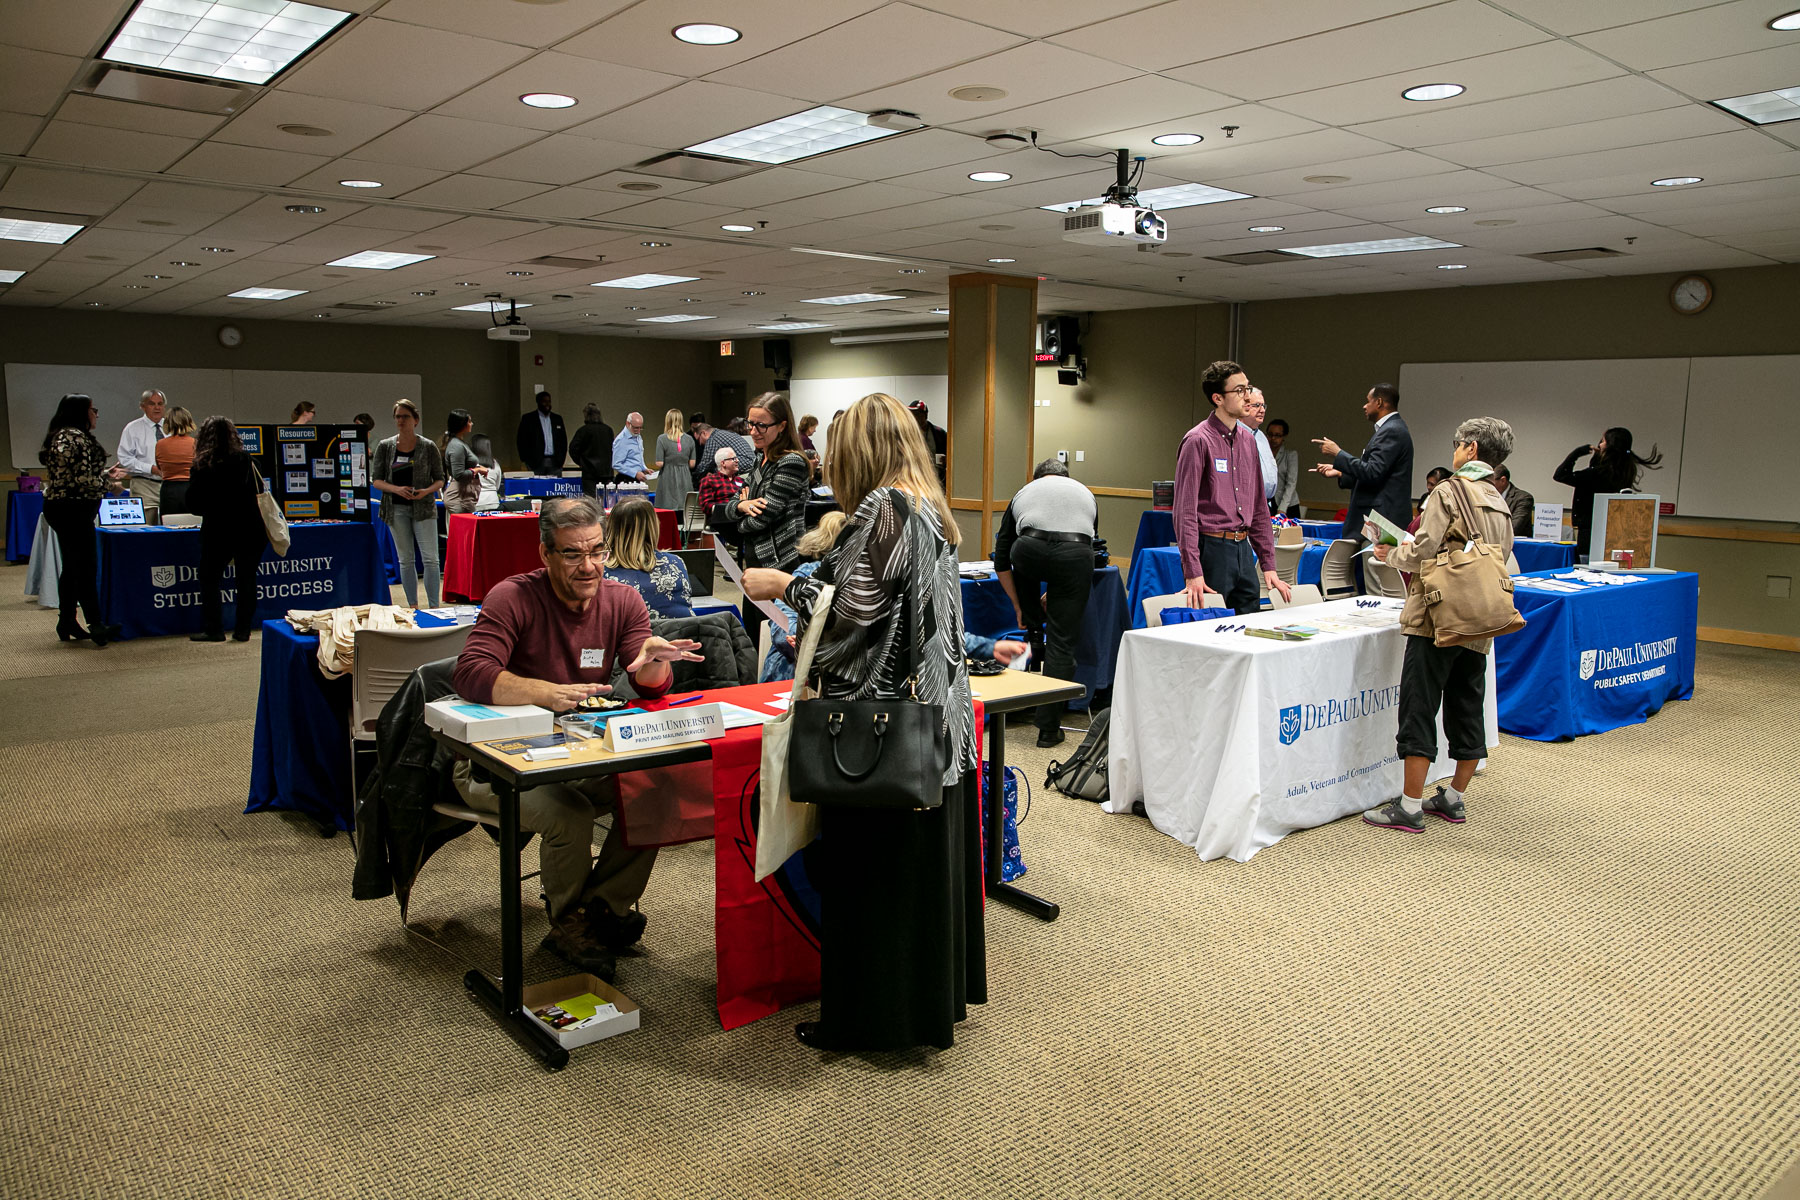 More than 20 departments set up educational booths in the Student Center, and attendees were able to engage with department representatives about campus resources for adjunct faculty. (DePaul University/Randall Spriggs)